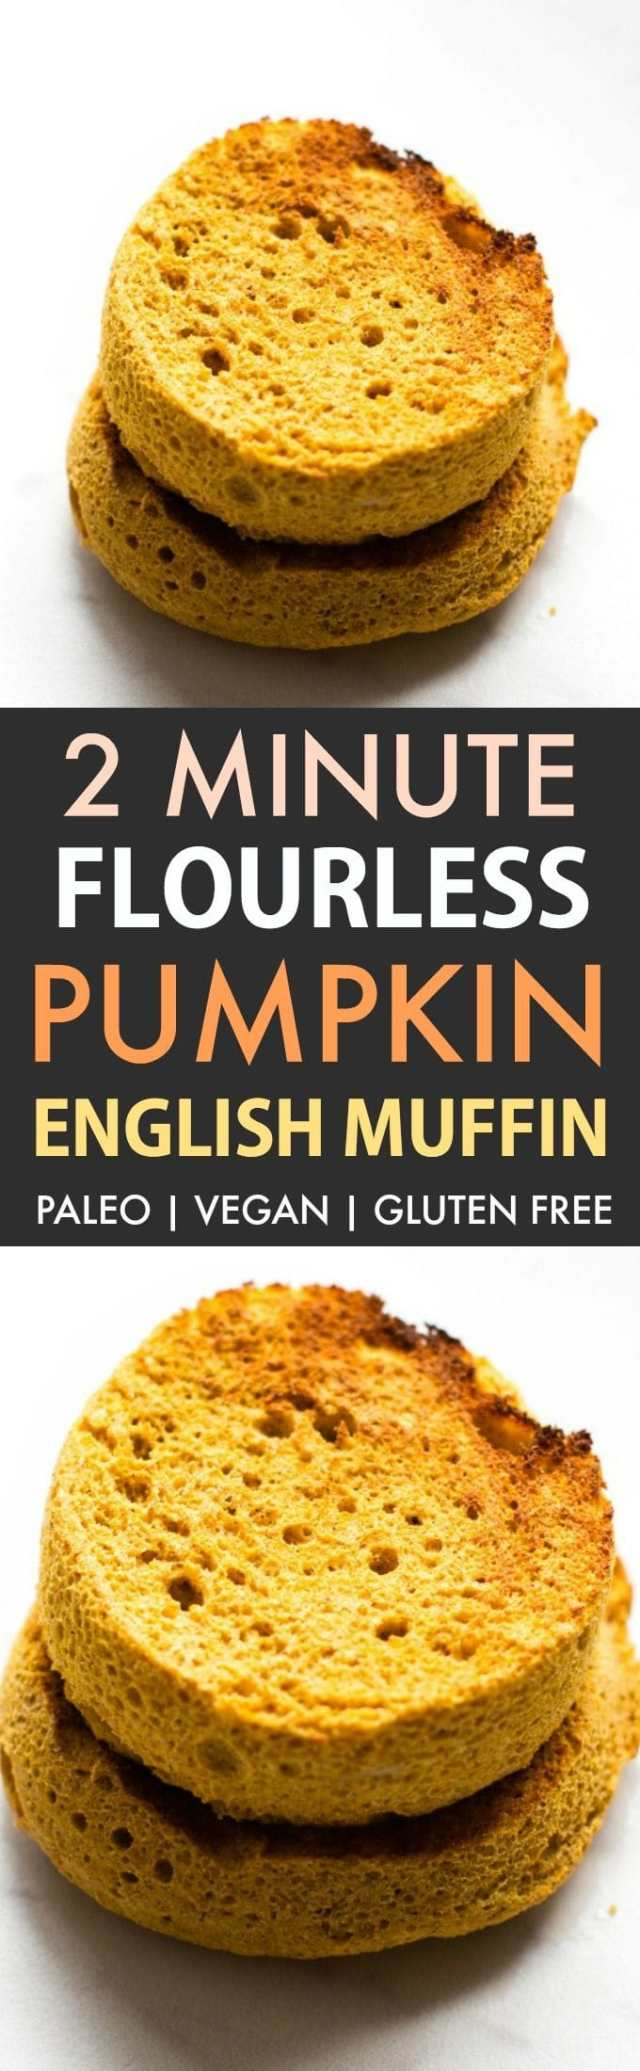 2-Minute Keto English Muffin (Paleo, Low Carb, Vegan, Gluten Free)- An easy recipe for a 2-minute flourless English muffin recipe- Super low carb and no grains or eggs needed- Oven option included! #keto #mugmuffin #ketobread #paleobread | Recipe on thebigmansworld.com